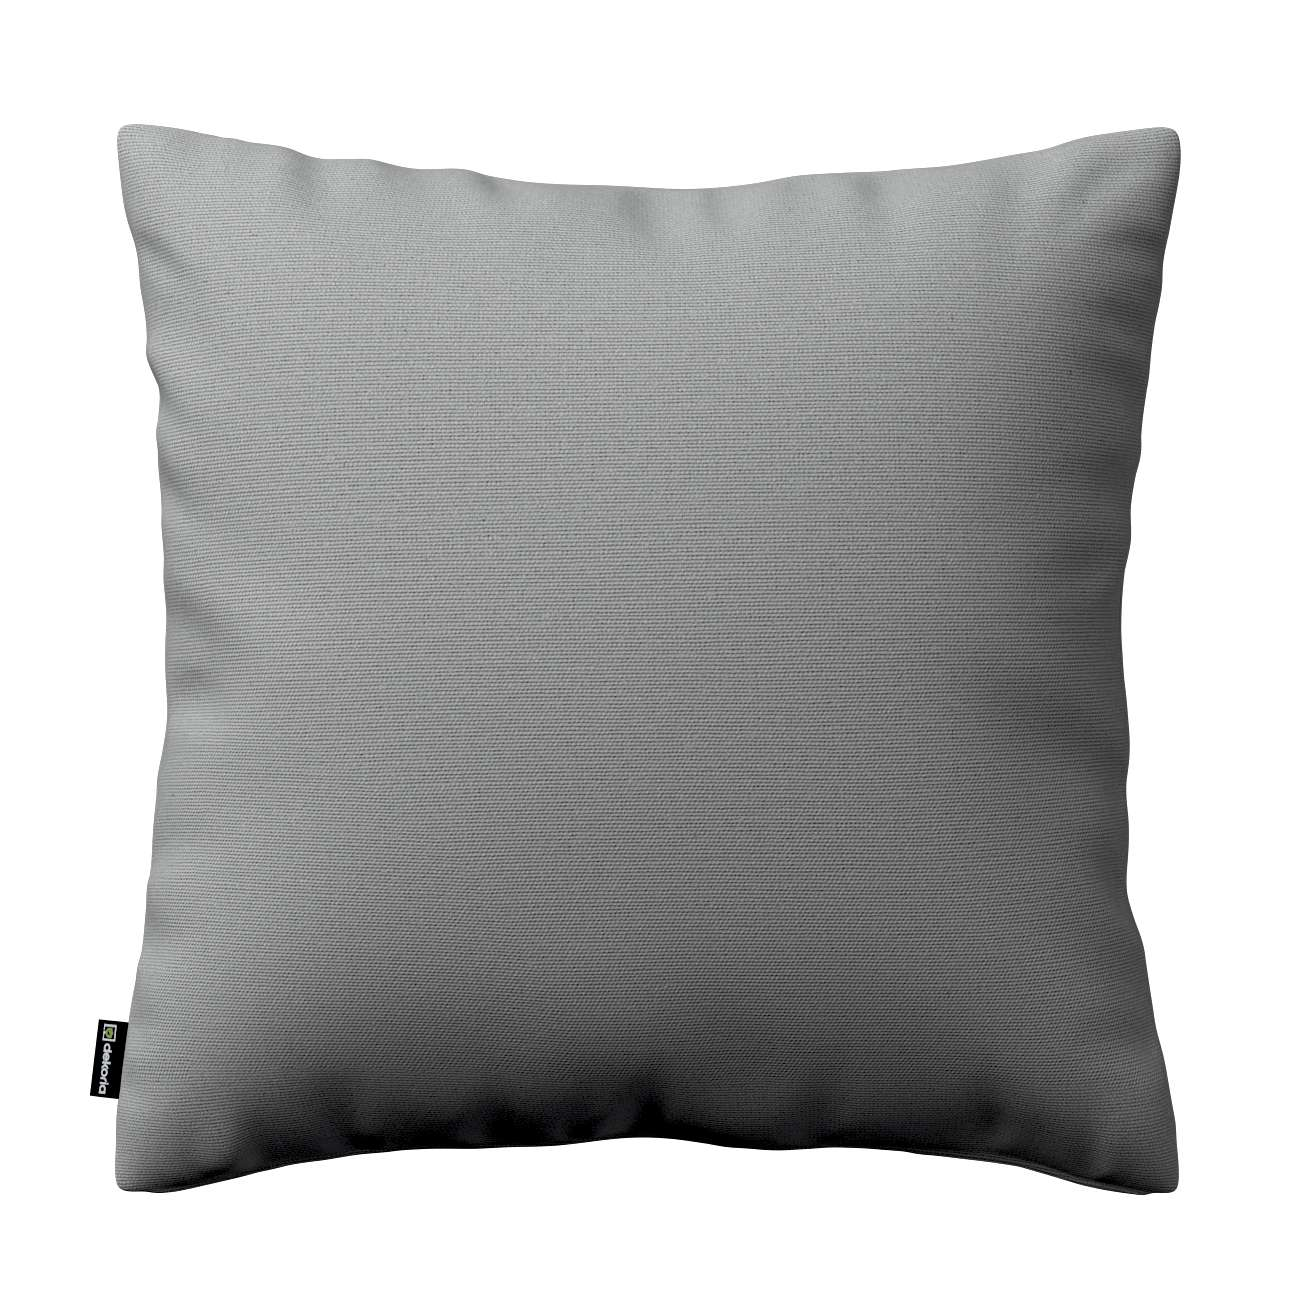 Kinga cushion cover 43 x 43 cm (17 x 17 inch) in collection Loneta , fabric: 133-24